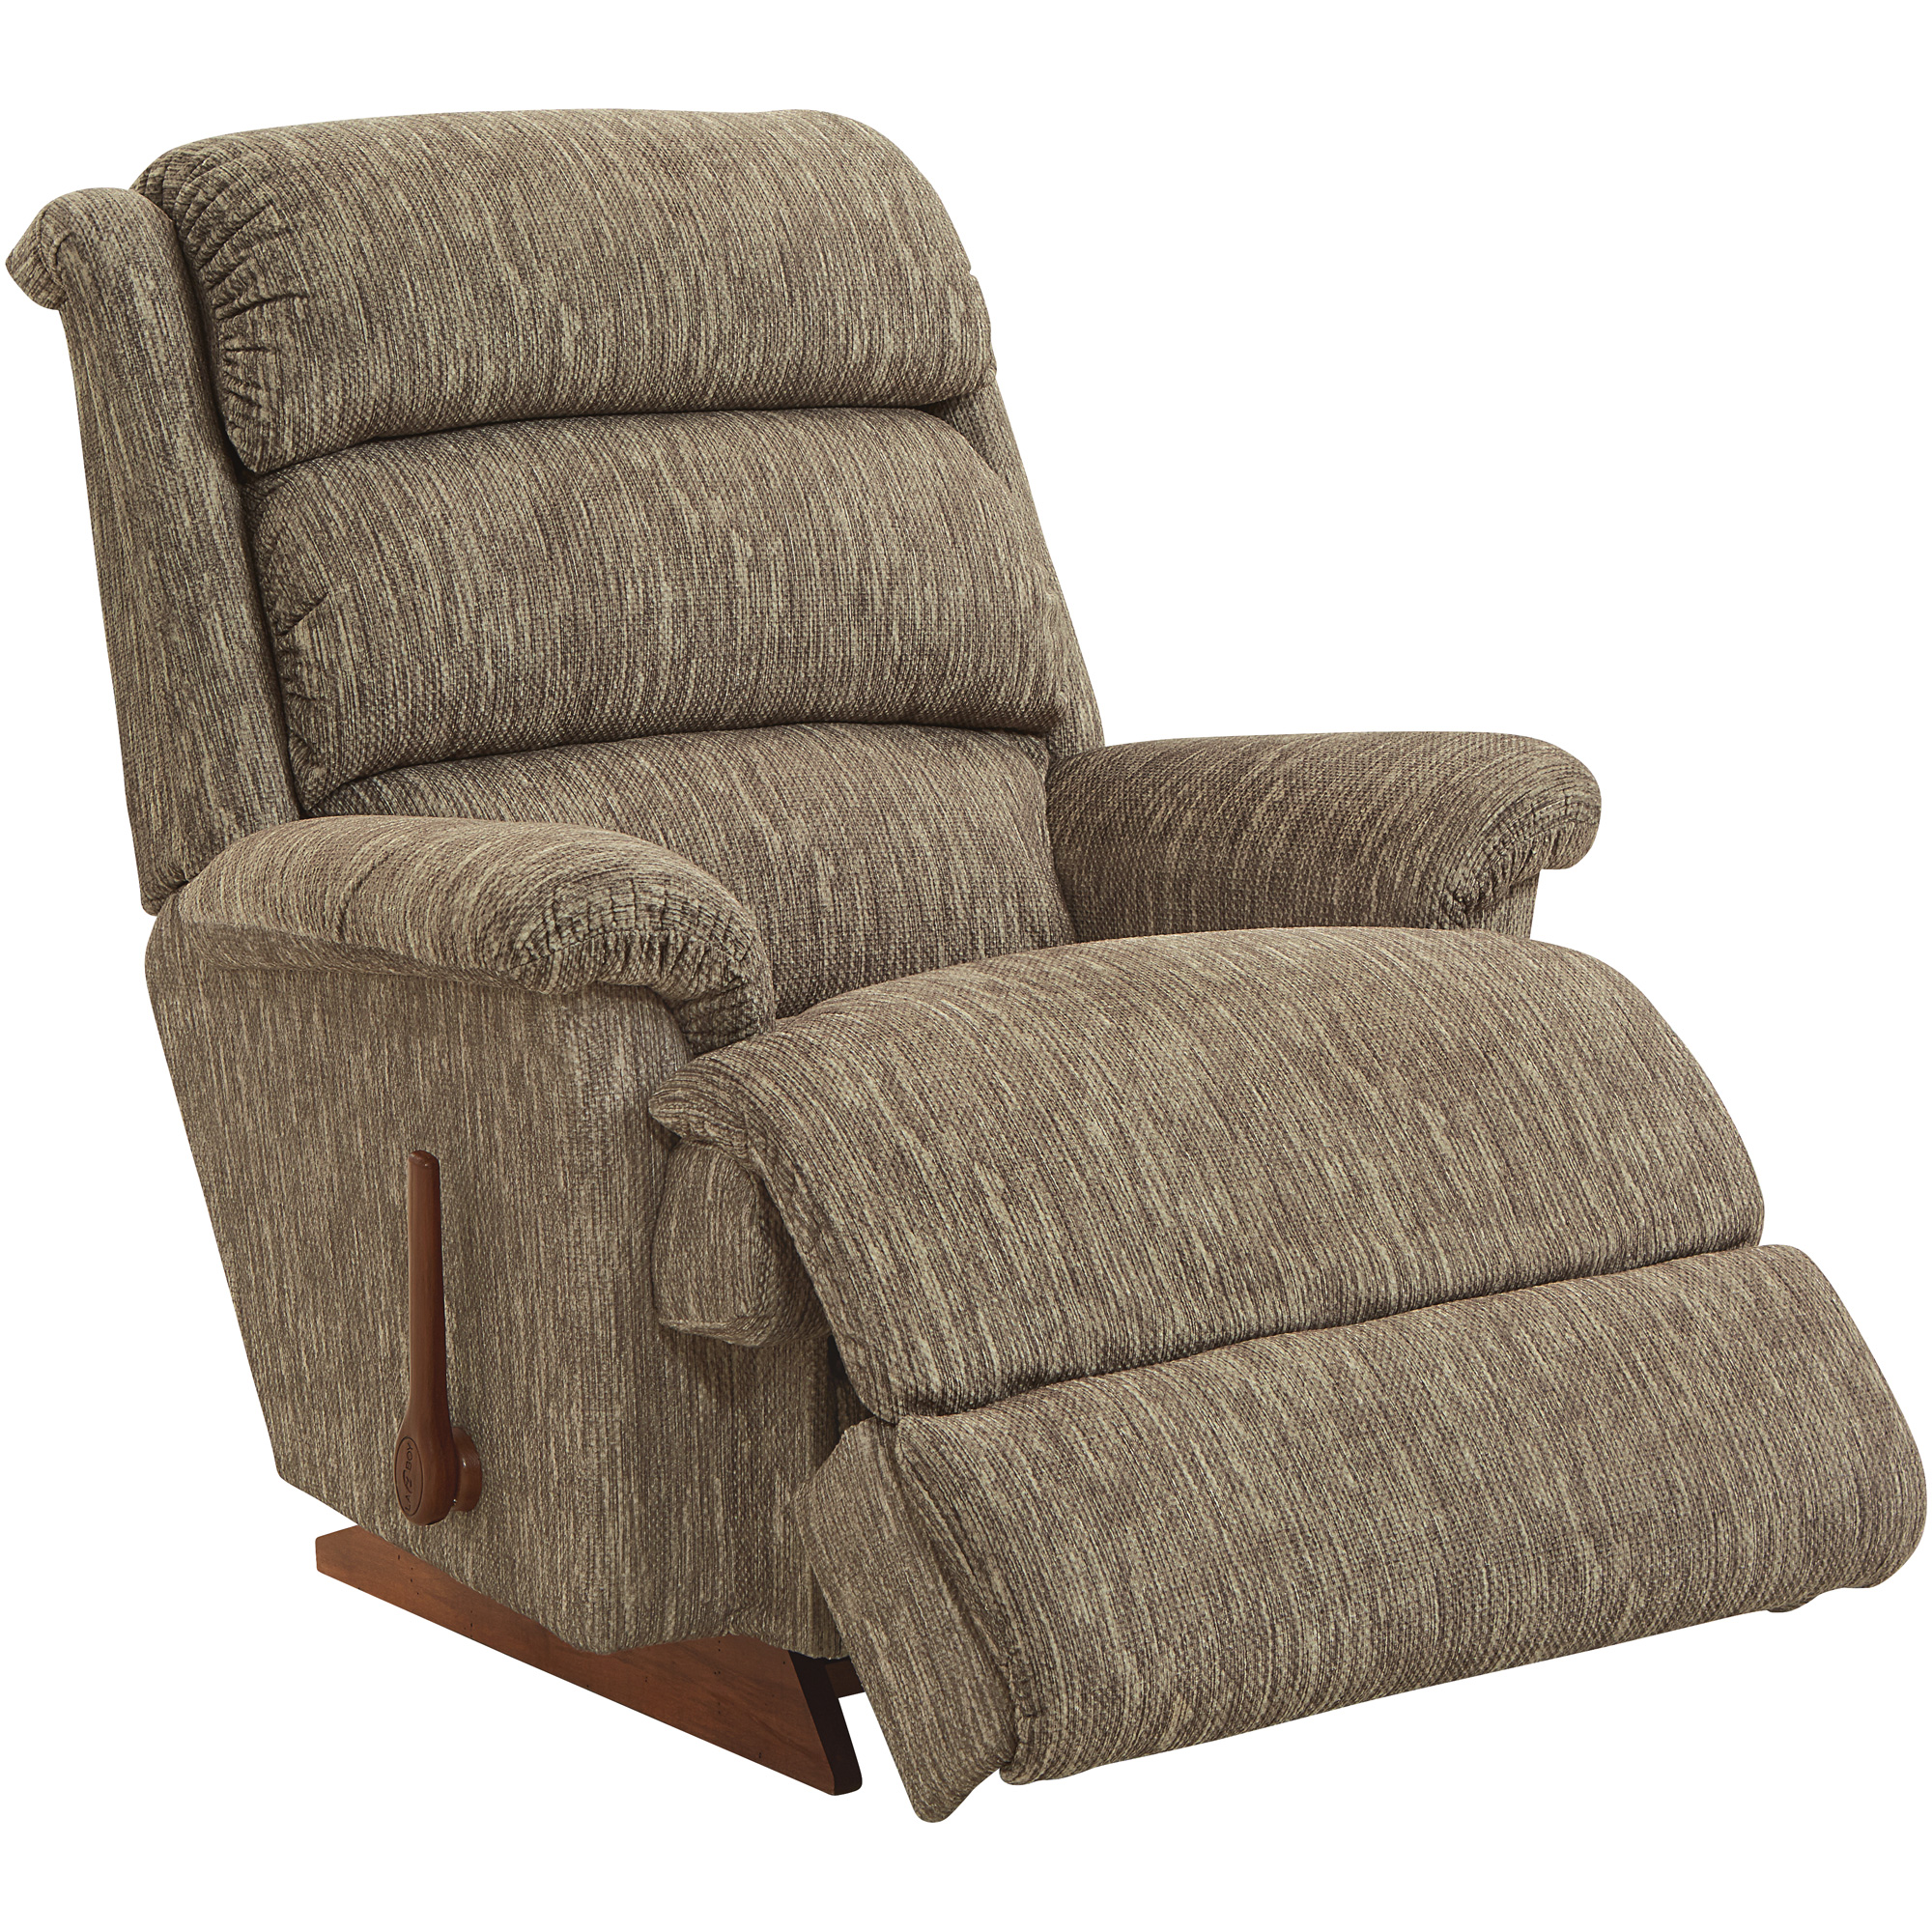 La-Z-Boy | Astor Driftwood Rocker Recliner Chair